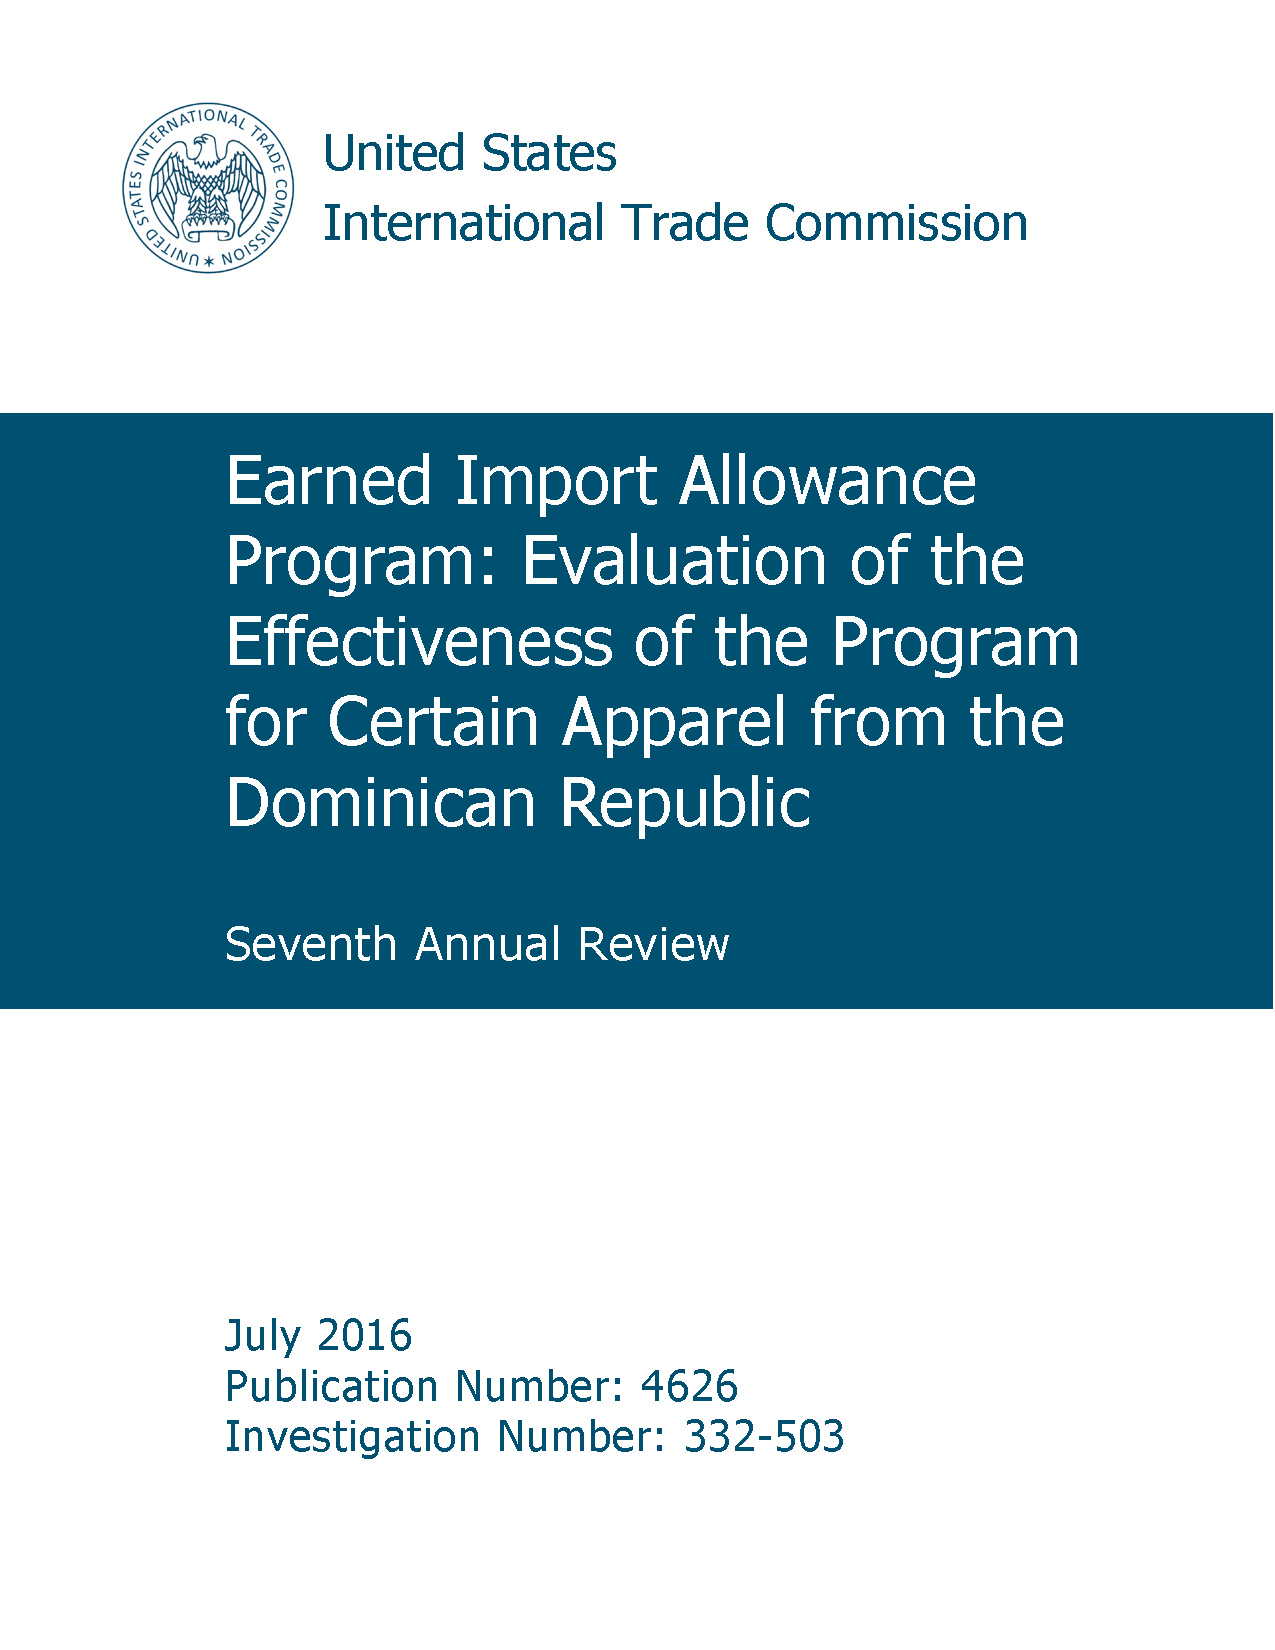 Earned Import Allowance Program: Evaluation of the Effectiveness of the Program for Certain Apparel from the Dominican Republic